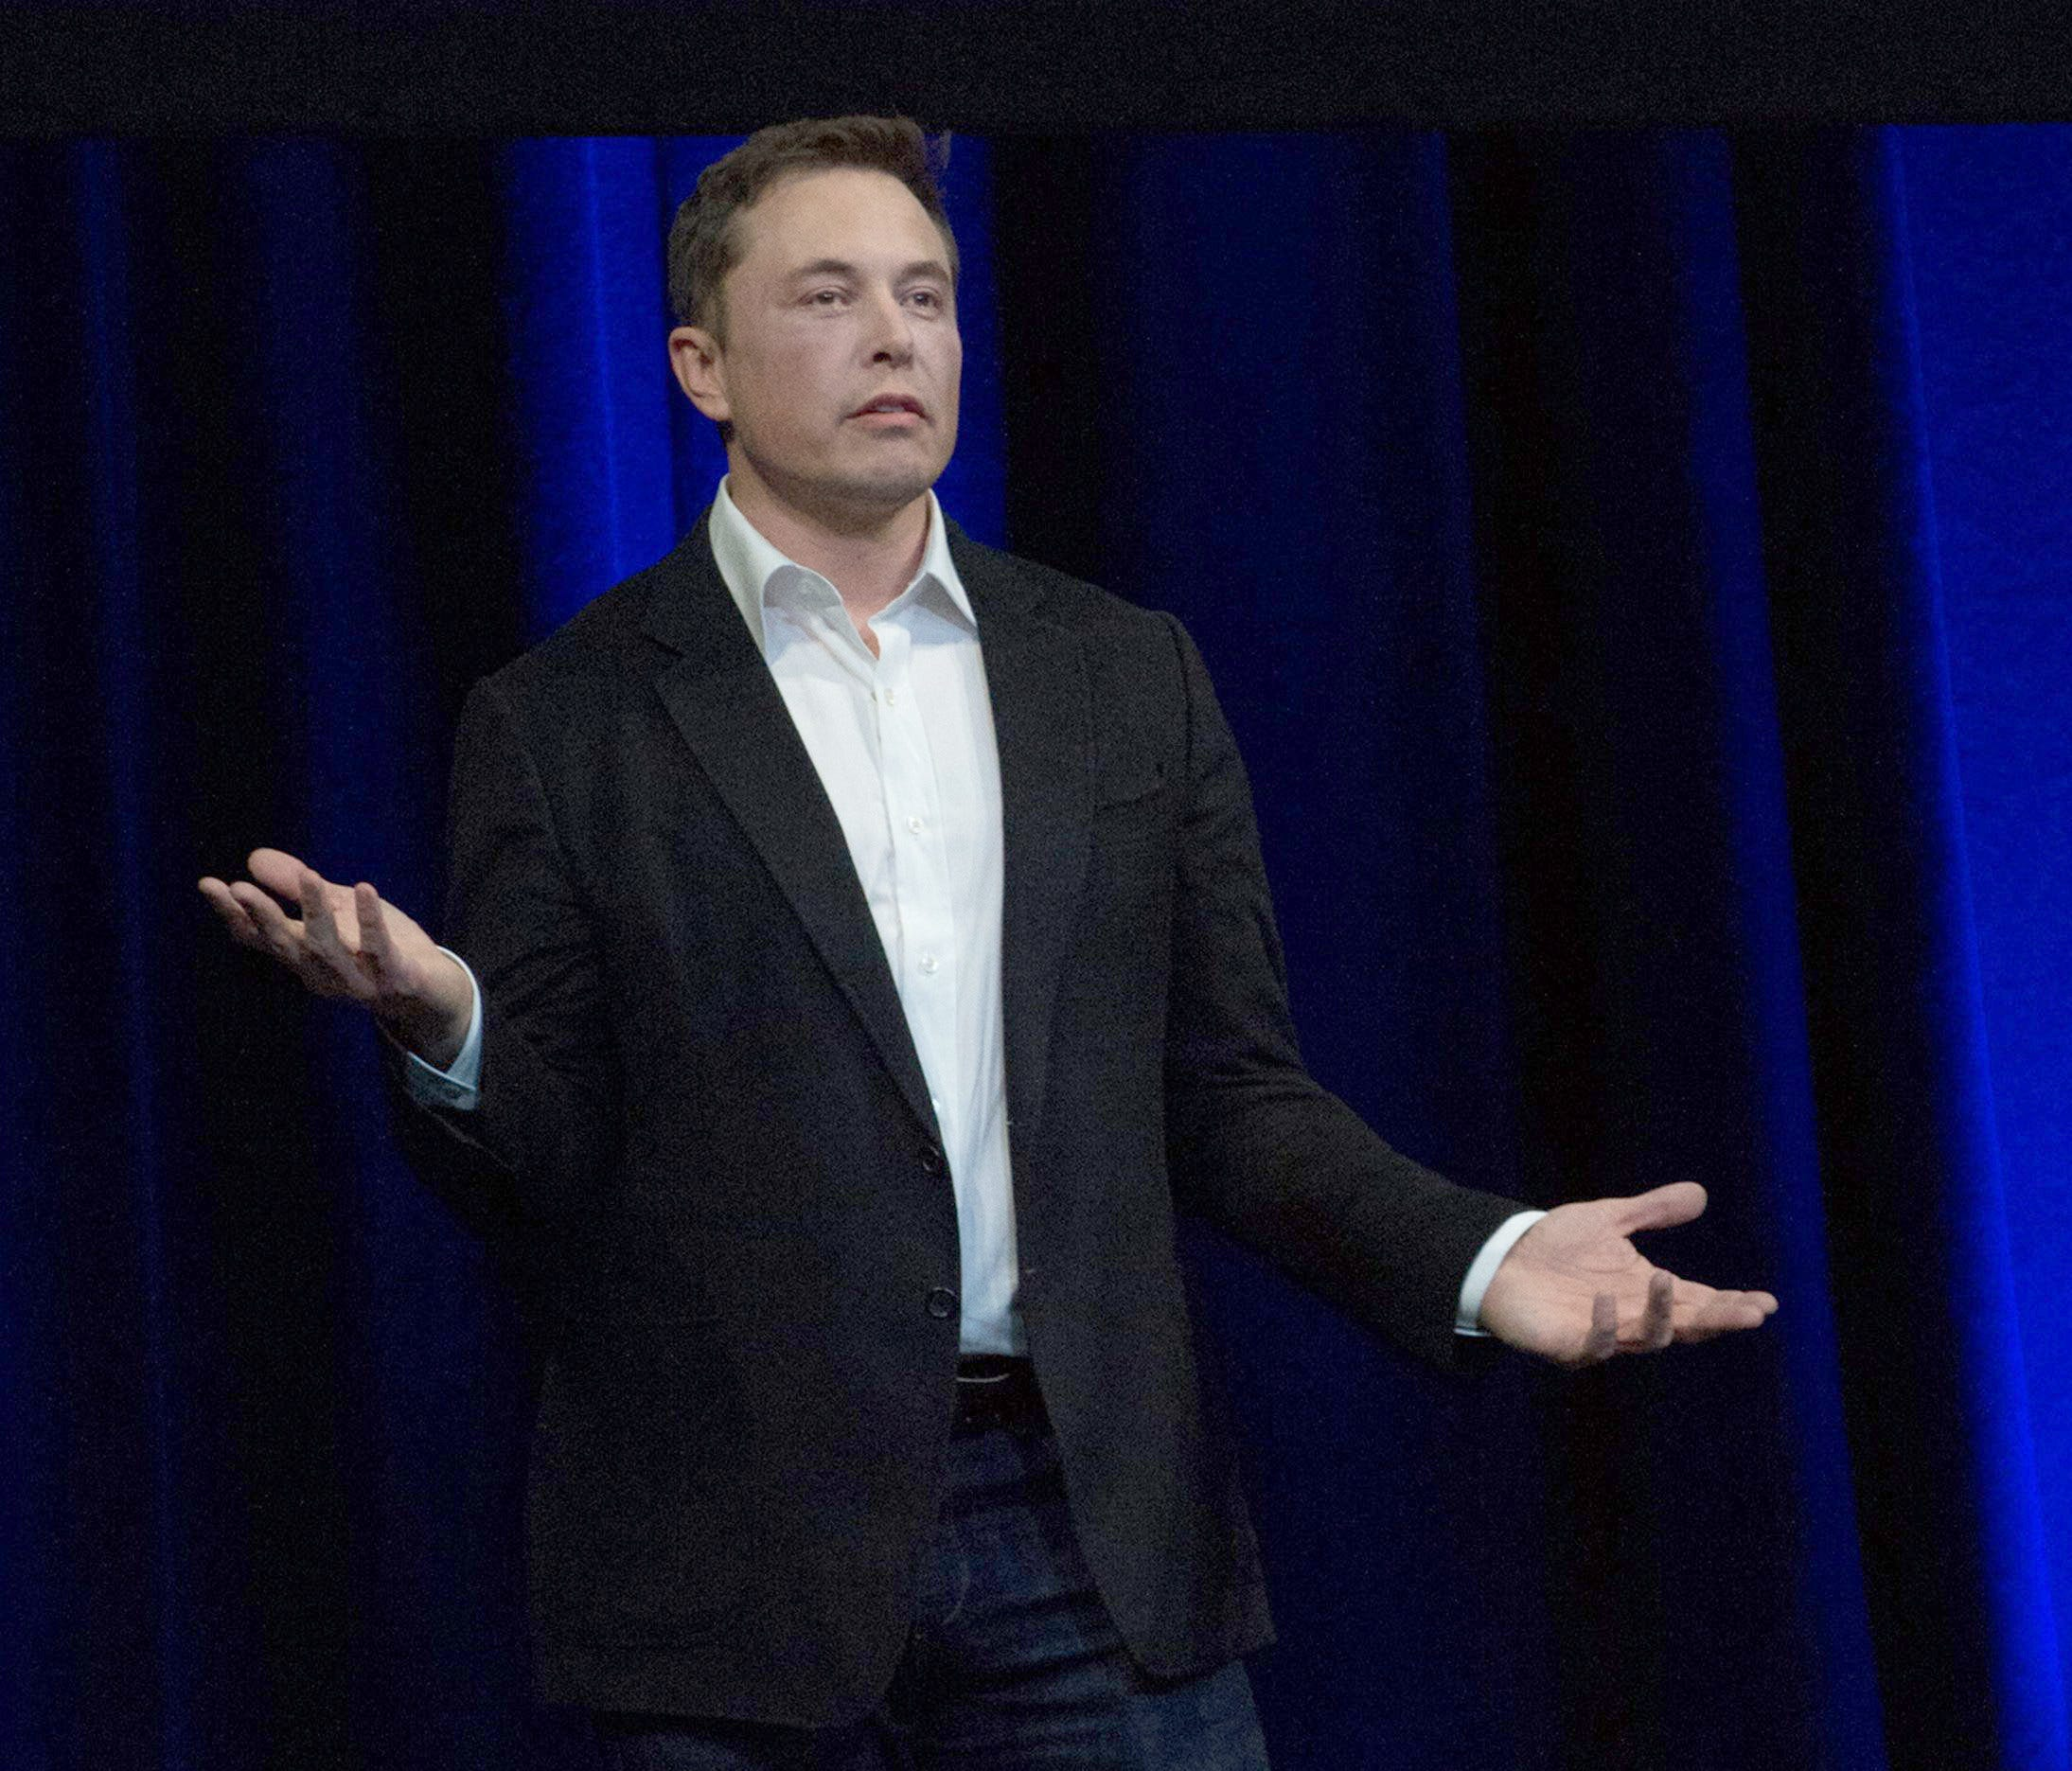 Elon Musk, Chief Executive Officer of Space Exploration Technologies Corporation, speaks on the final day of the 68th International Astronautical Congress in Adelaide, Australia, on Sept. 29, 2017.